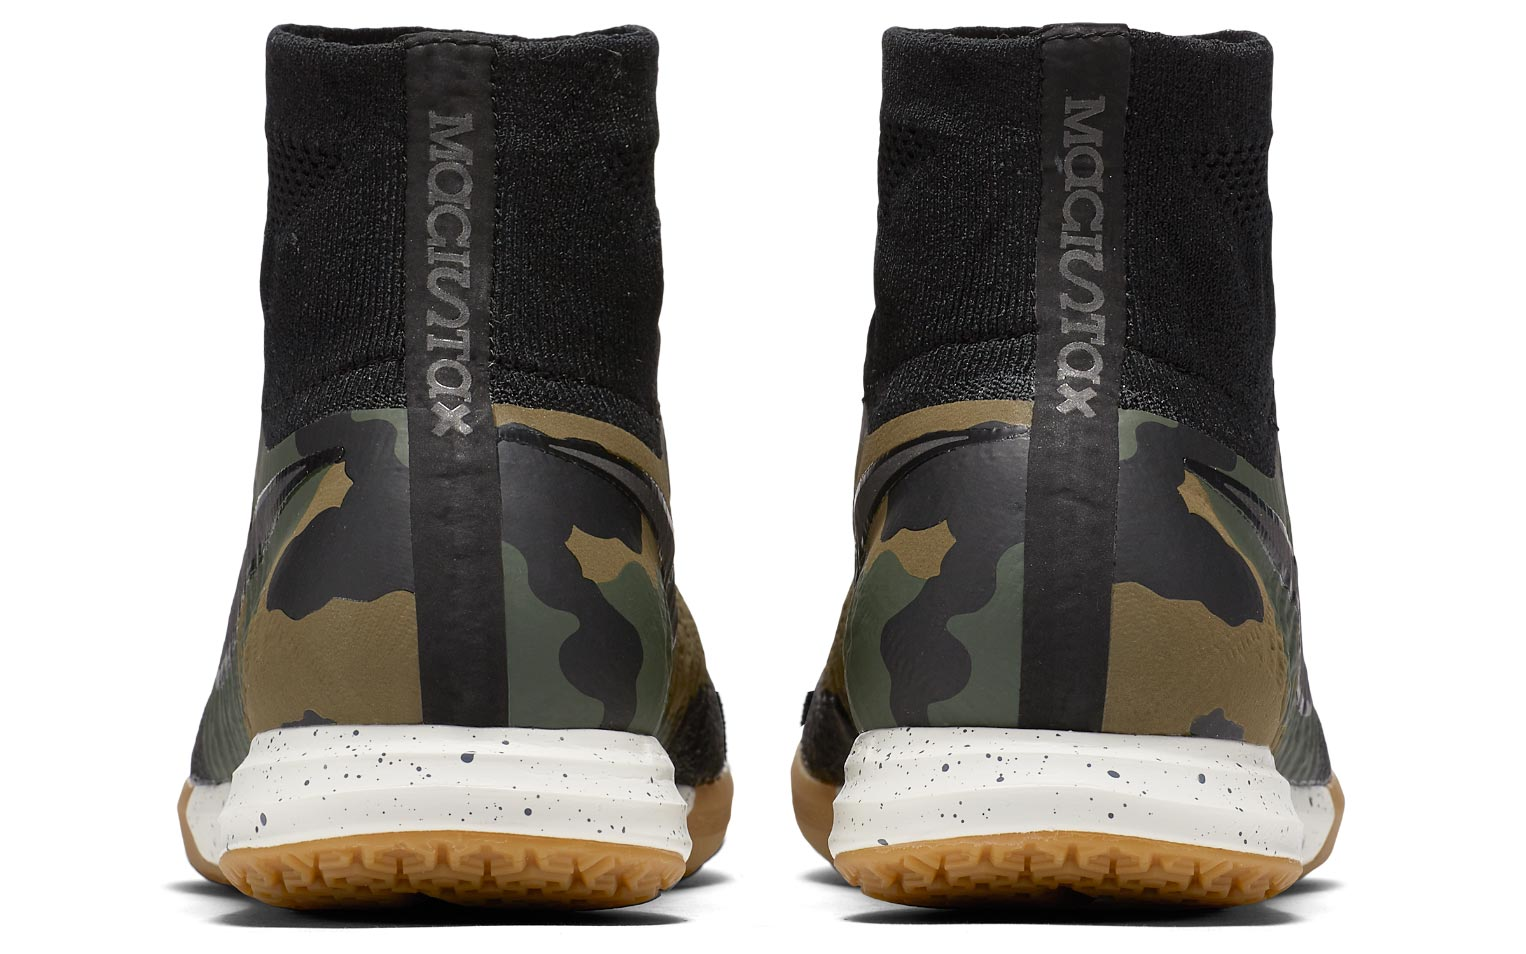 die nike magistax proximo camo schuhe die am 7 april. Black Bedroom Furniture Sets. Home Design Ideas